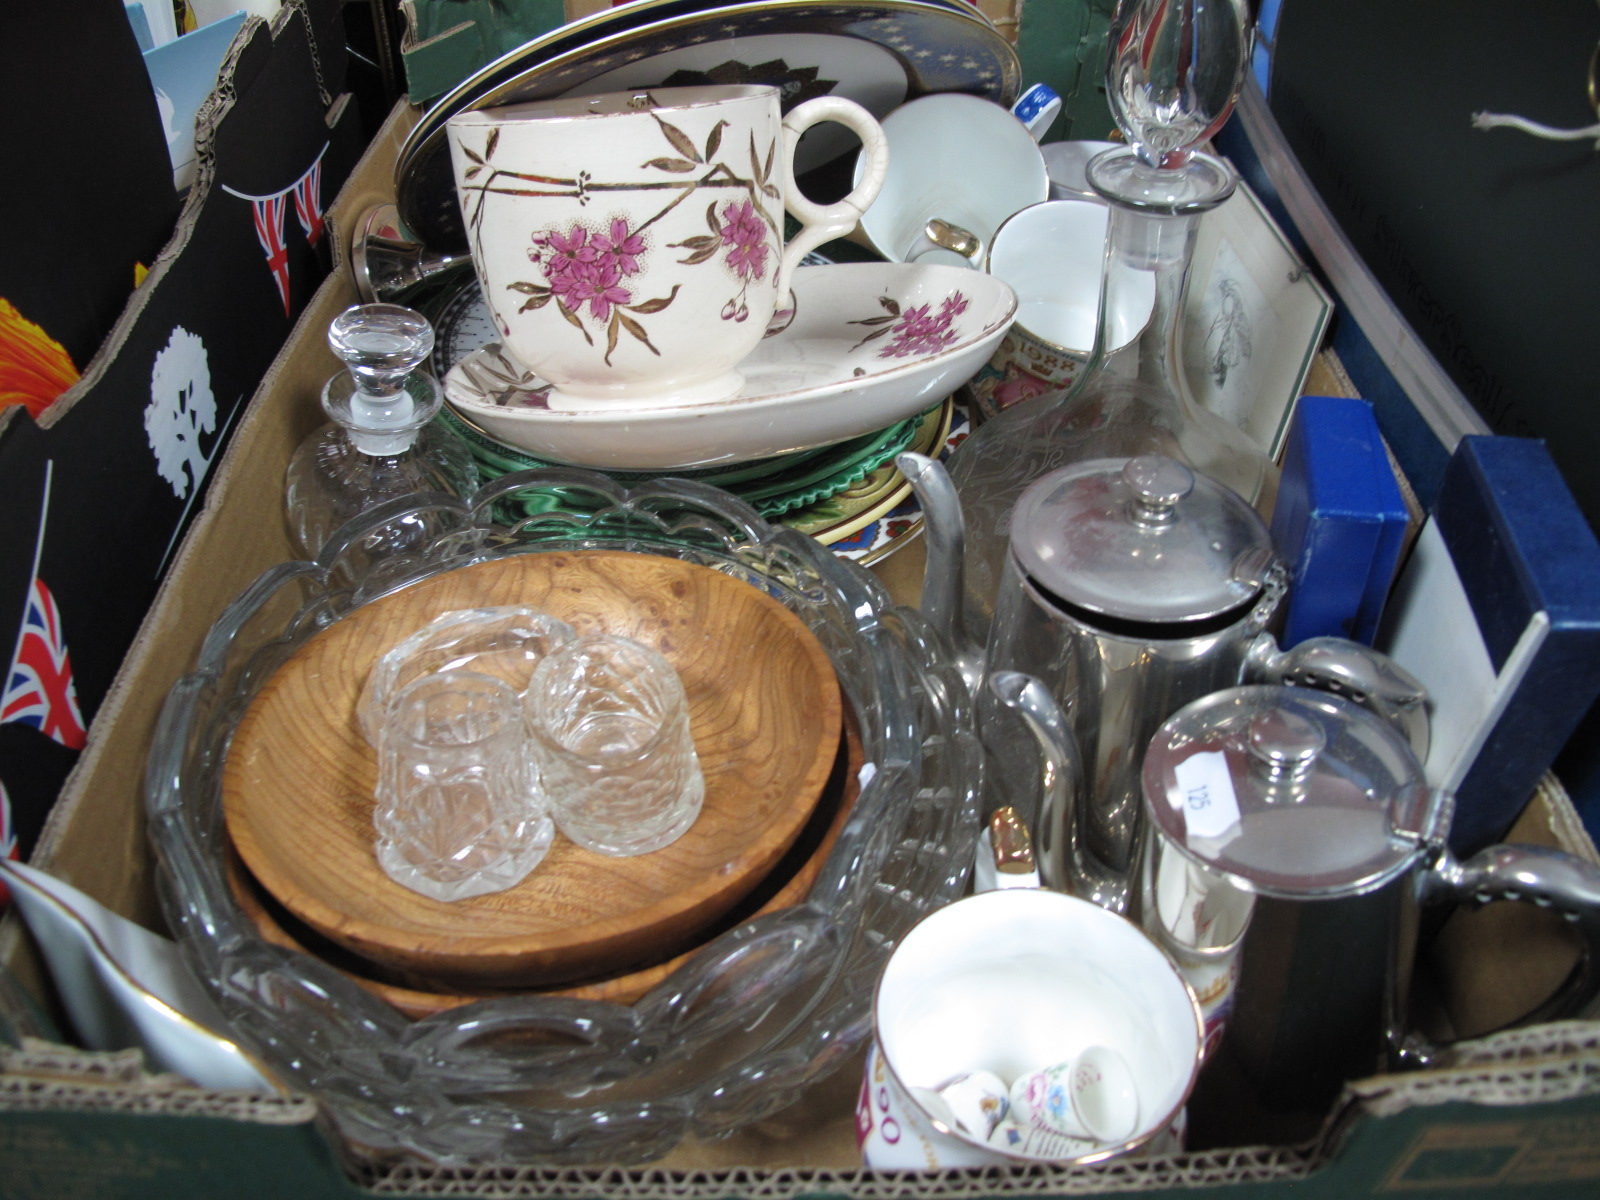 Lot 16 - A Spode Millennium Achievements Plate, green leaf plates, breakfast cup and saucer, commemorative